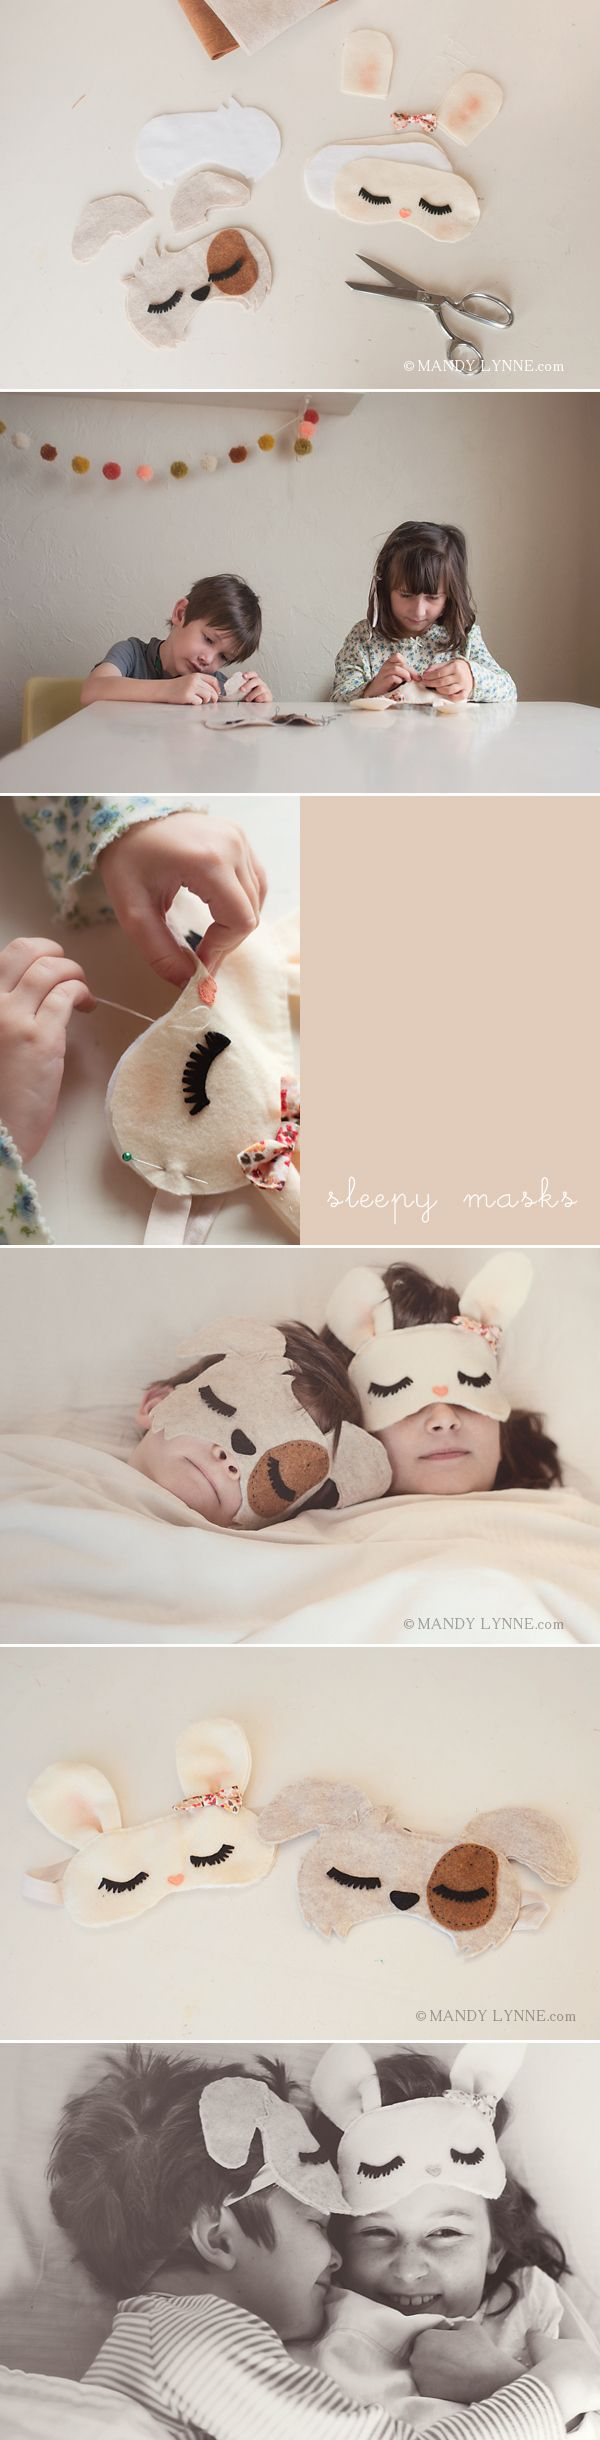 DIY sleep masks